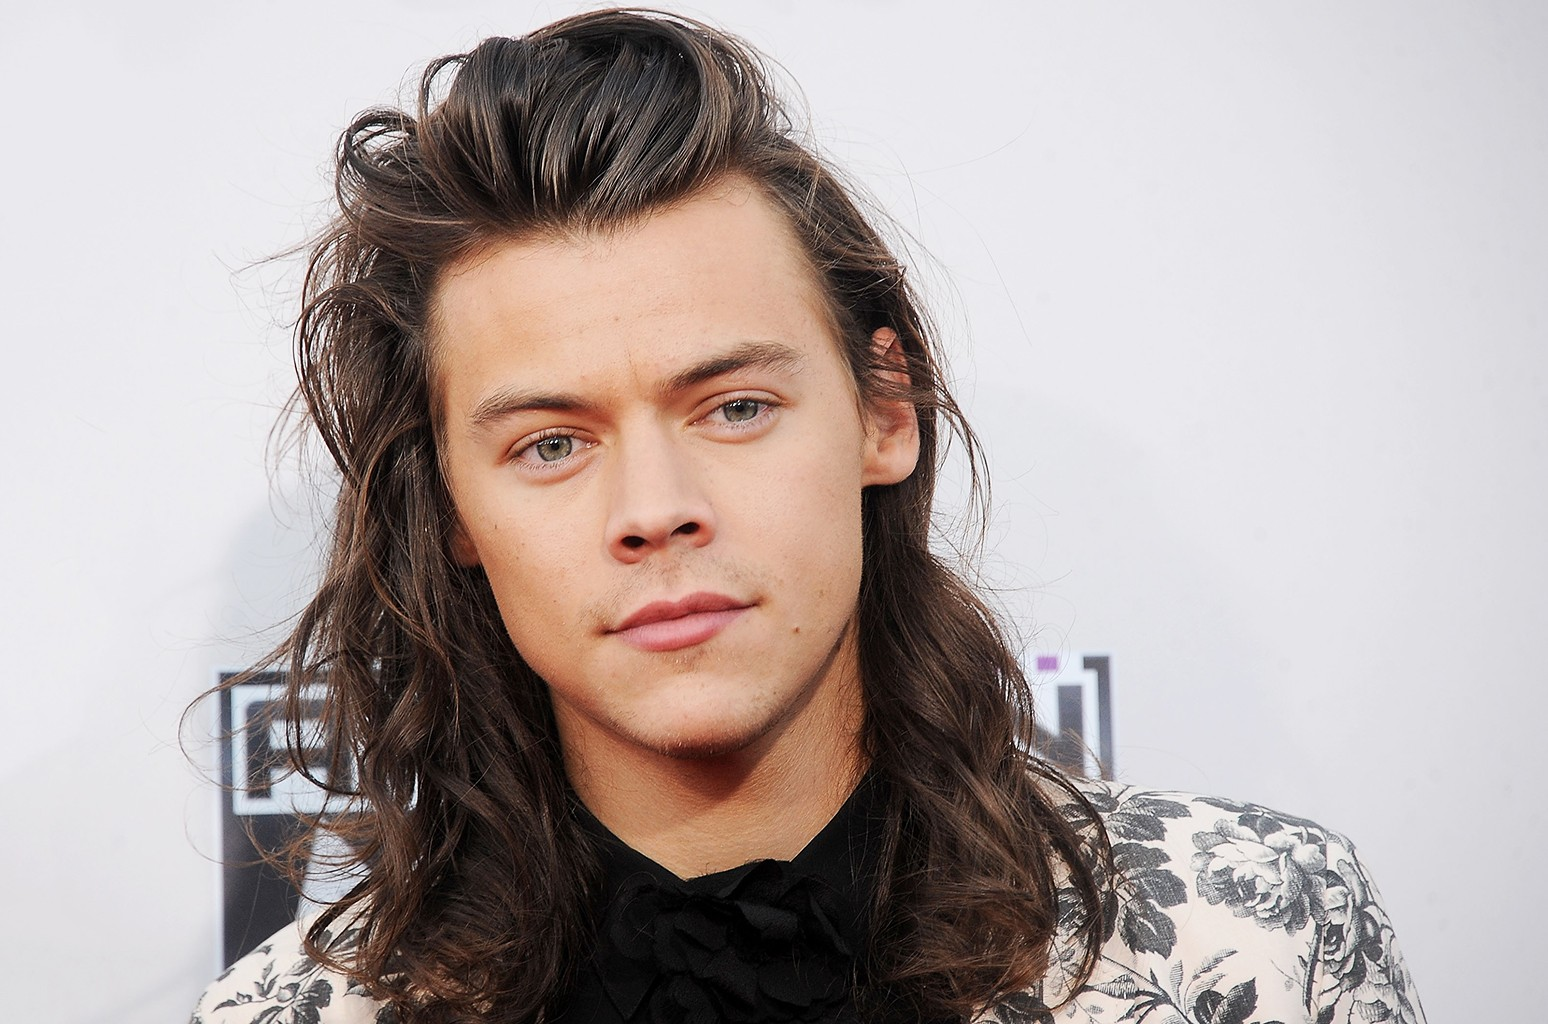 Harry Styles of One Direction arrives at the 2015 American Music Awards at Microsoft Theater on Nov. 22, 2015 in Los Angeles.